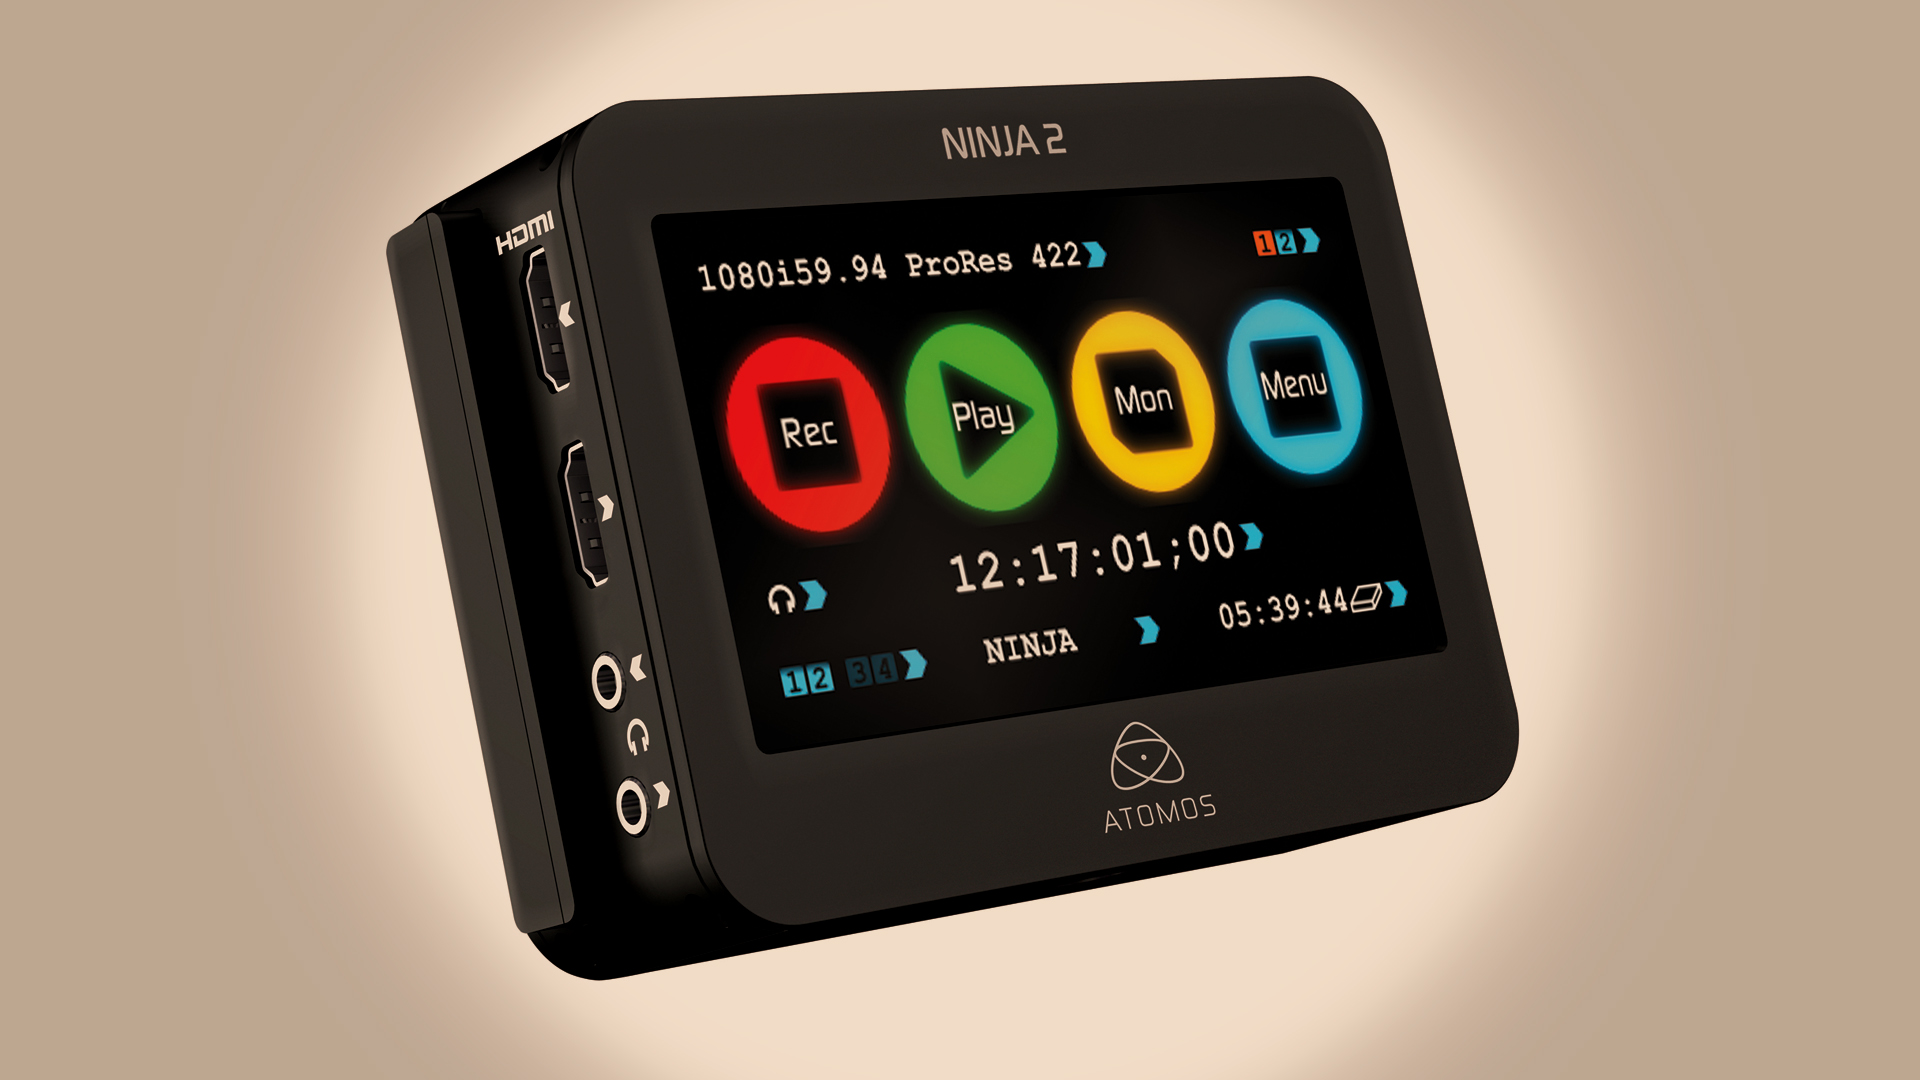 NAB 2013: Atomos Ninja-2 Price Drop & DSLR Support 6